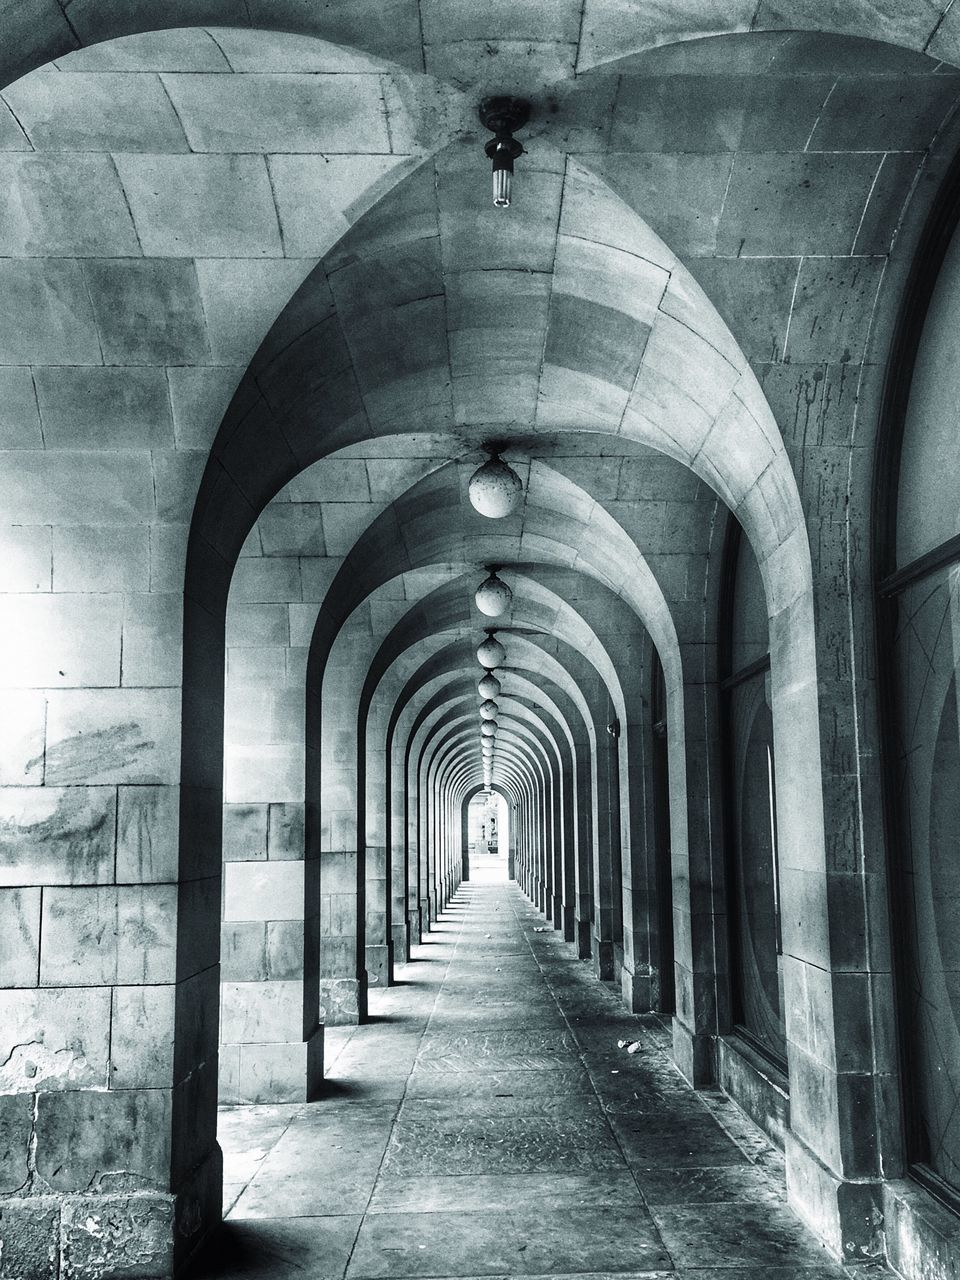 the way forward, arch, architecture, indoors, built structure, diminishing perspective, corridor, architectural column, day, no people